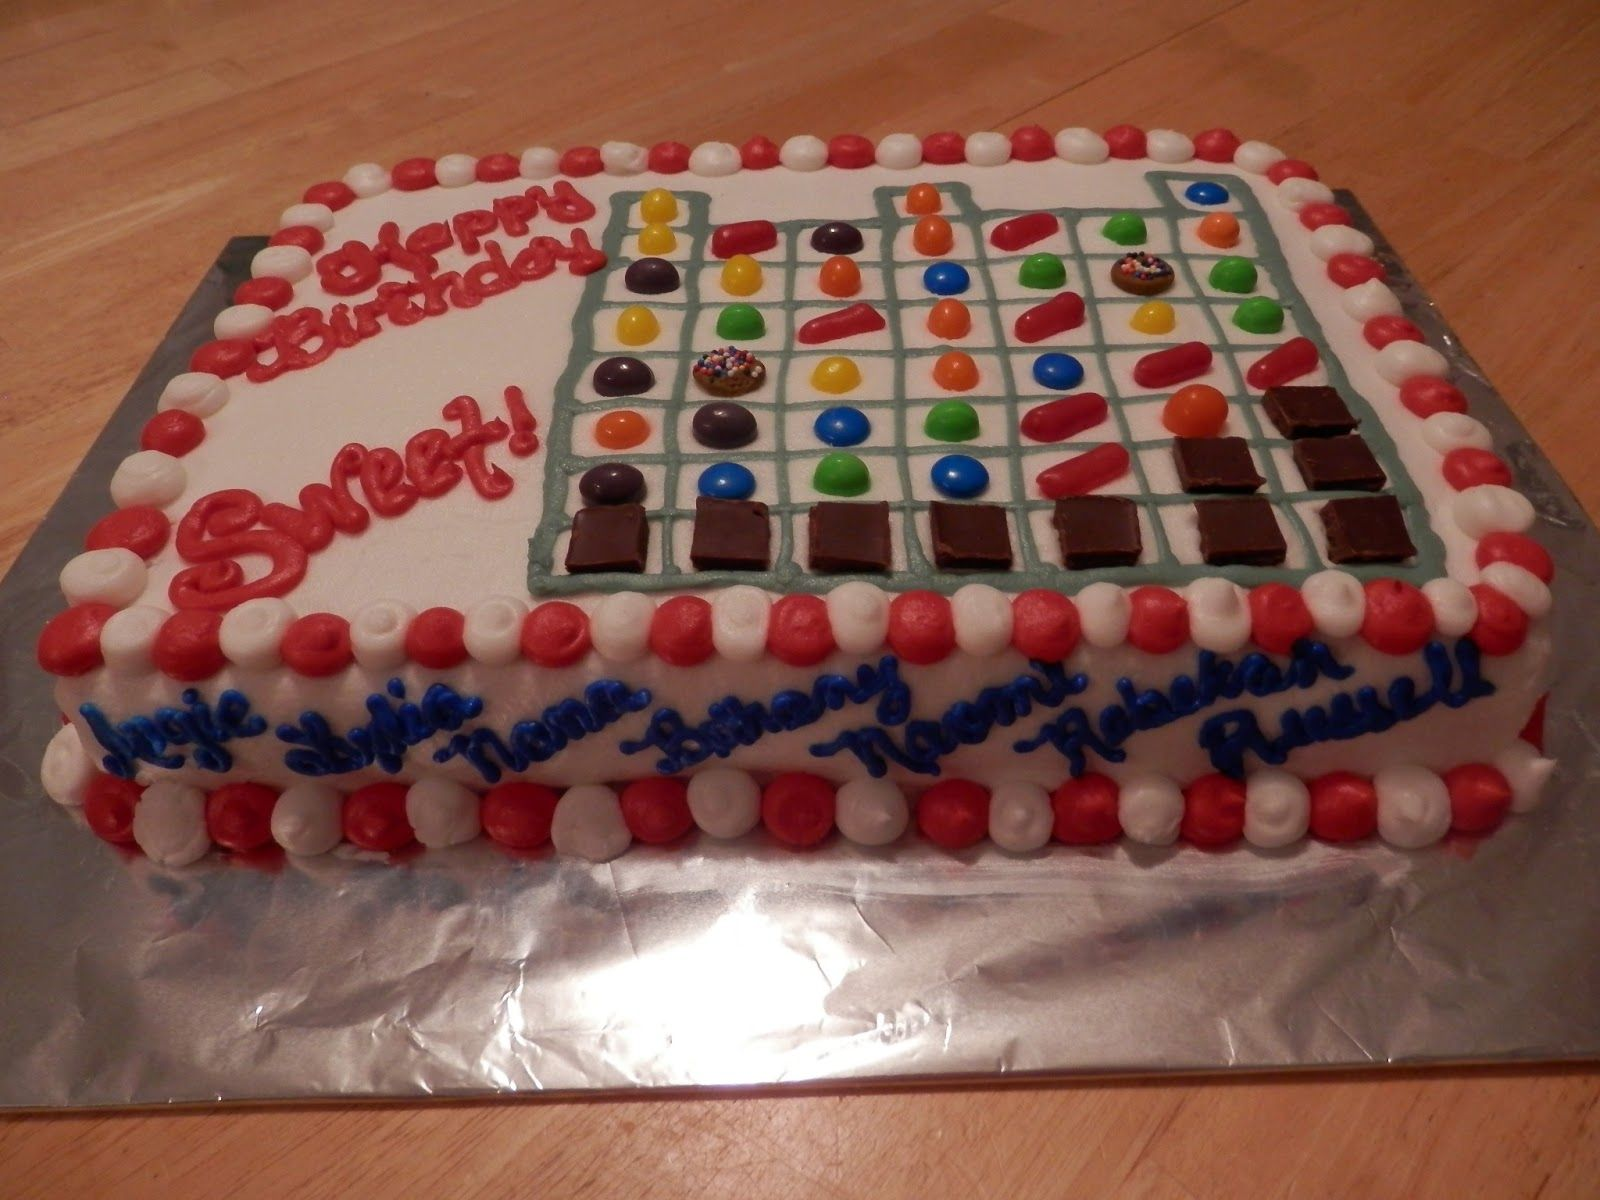 candy birthday cakes | Angie Makes Cakes